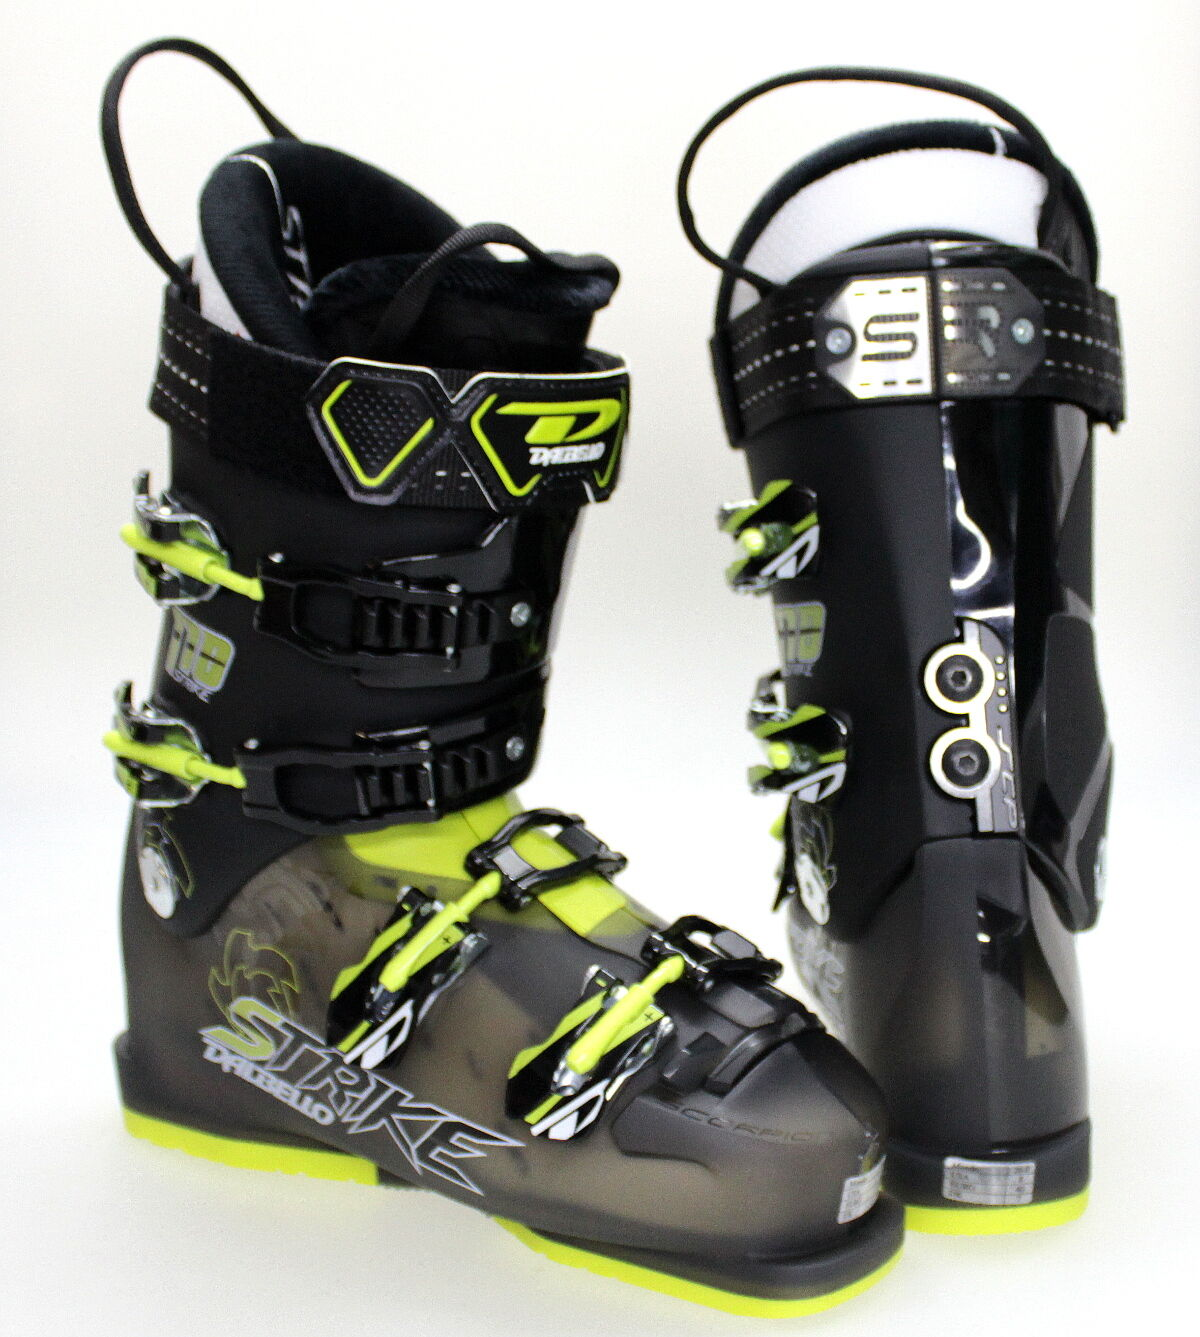 Dalbello Strike 110 Size 40  MO 26.0 ski shoes Men's Athletic Ski Boots S-N  factory outlets